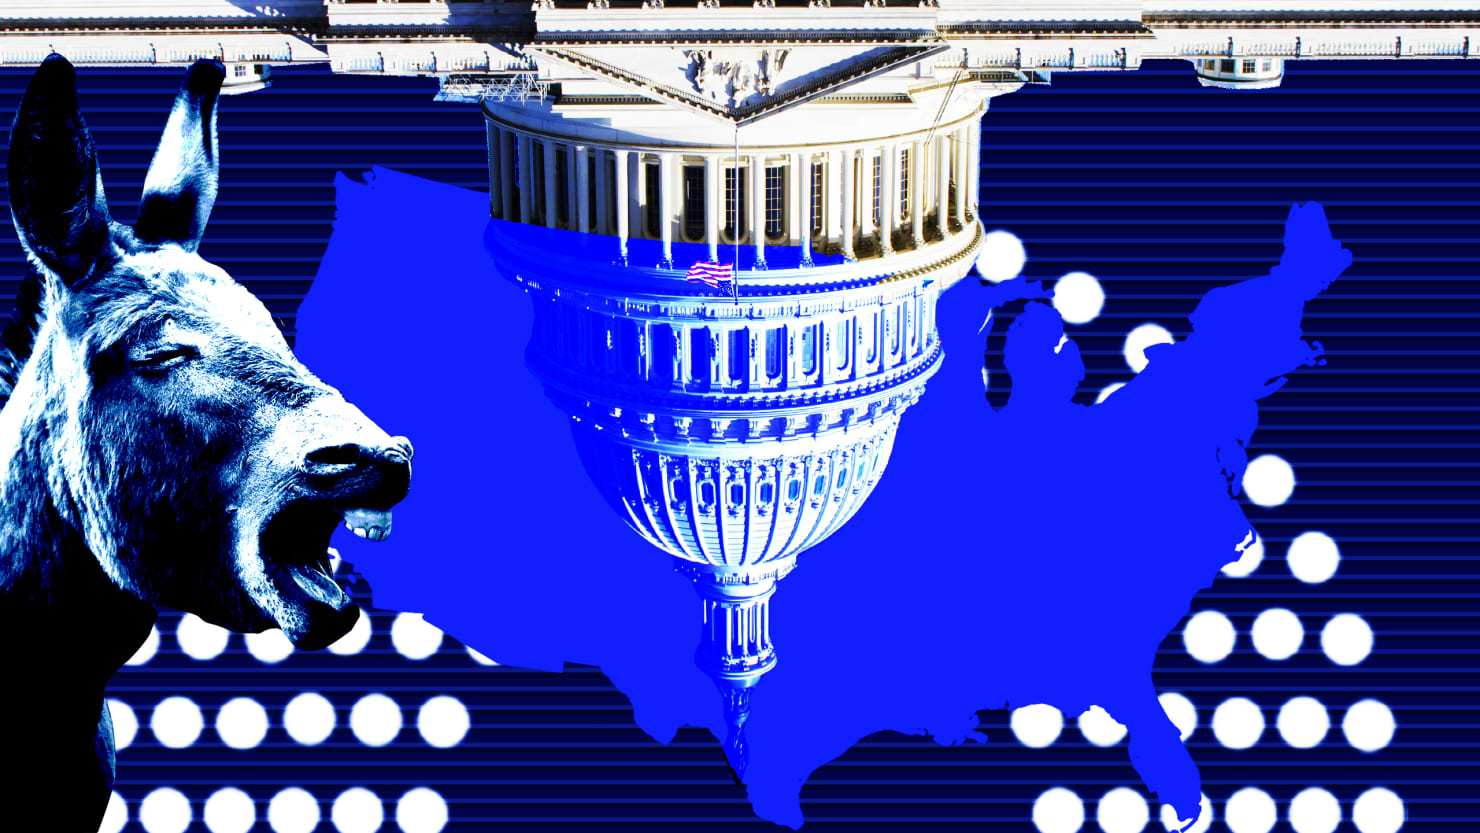 Democrats Take Control of House as 'Blue Wave' Wipes Out Republicans